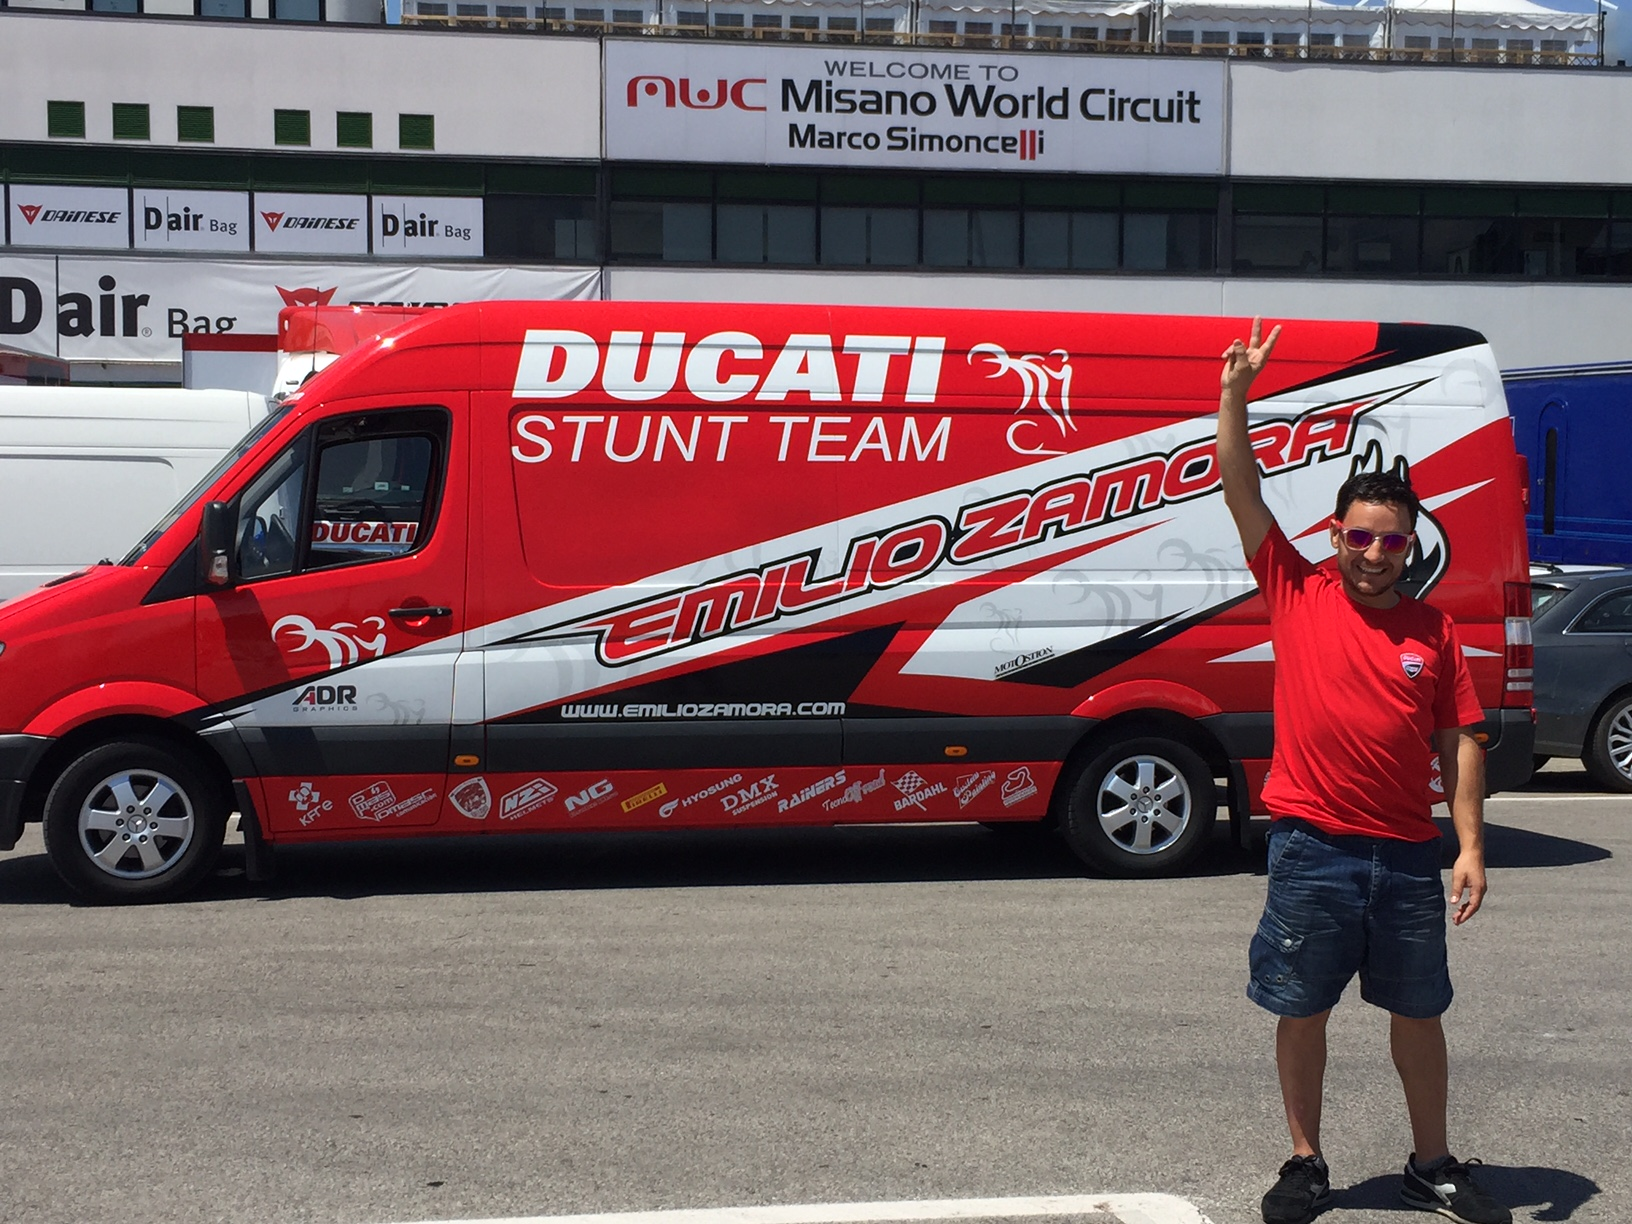 world_ducati_week_2016_wdw_stunt_team_moto_show_motor_exhibicion_espectaculo_ducatistas_doc_misano_italy_italia_rimini_wheelie_stoppie_burnout_panigale_diavel_monster_freestyle_1